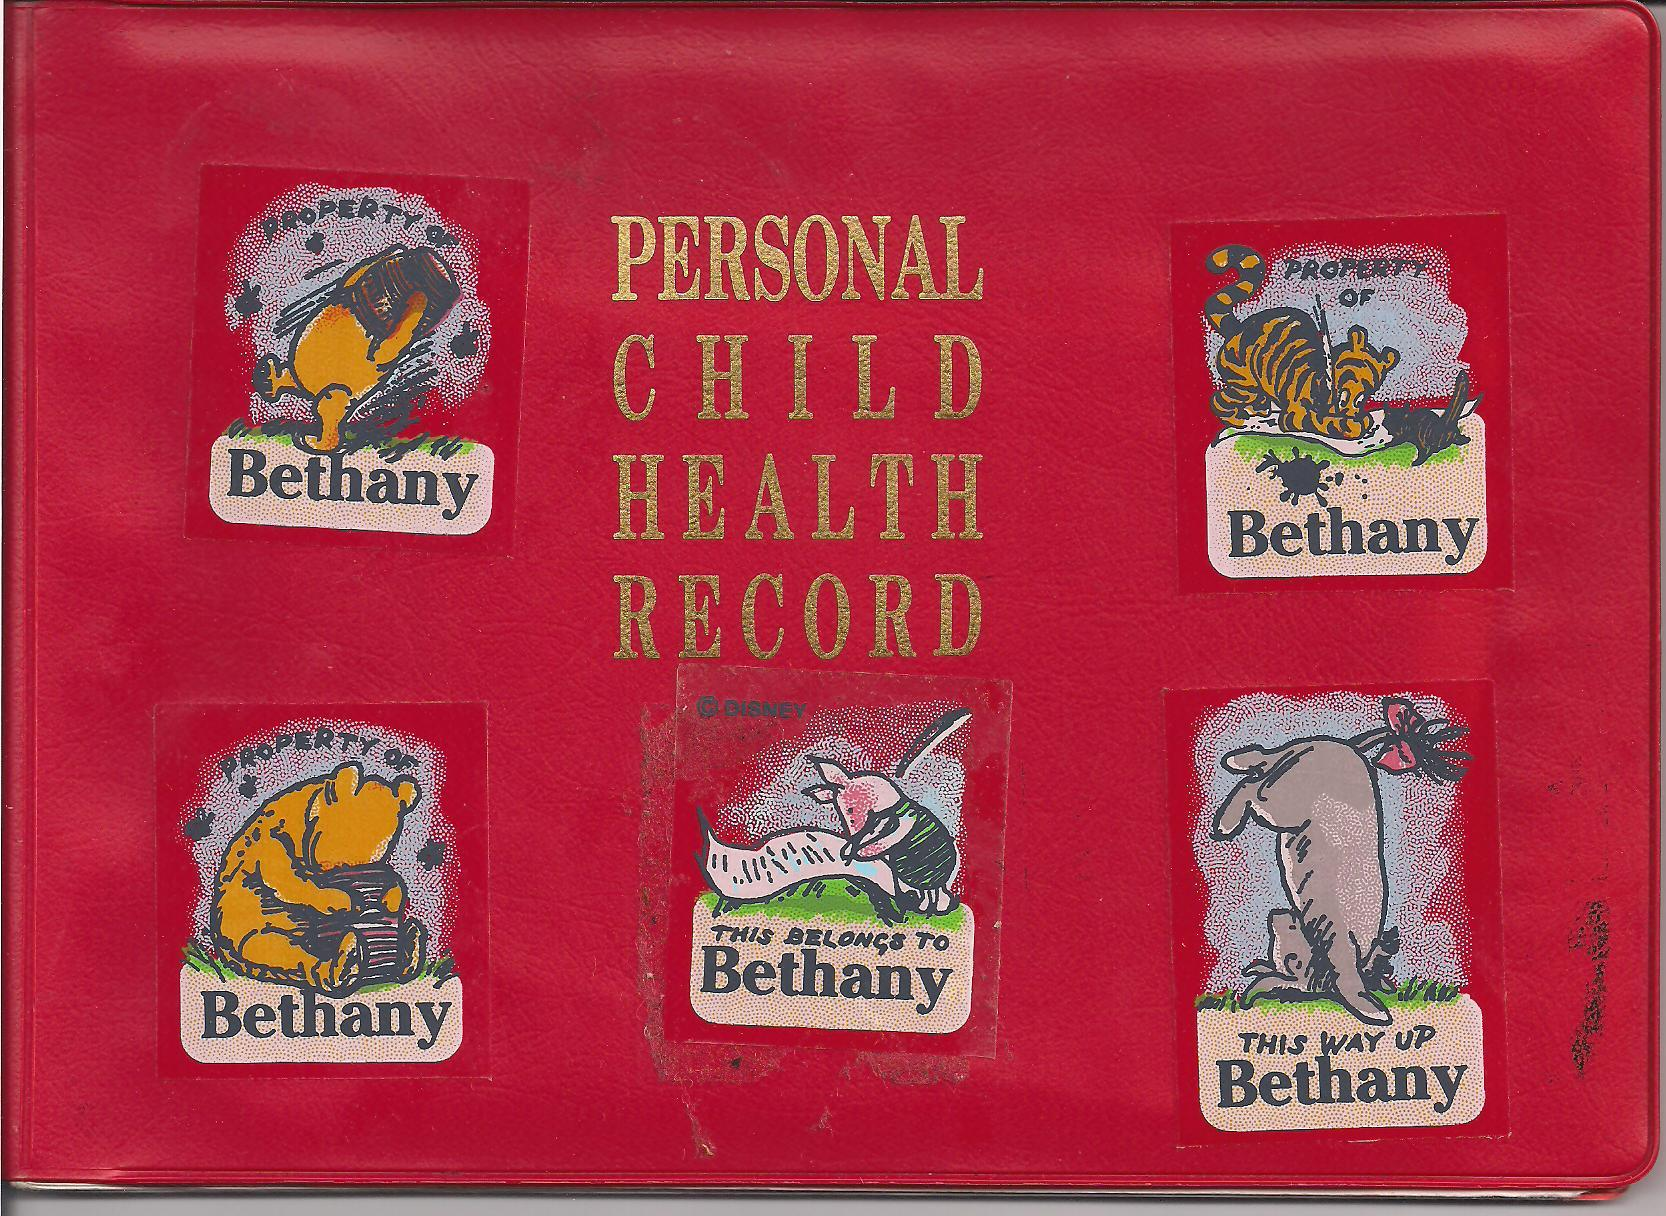 Personal child health record red book